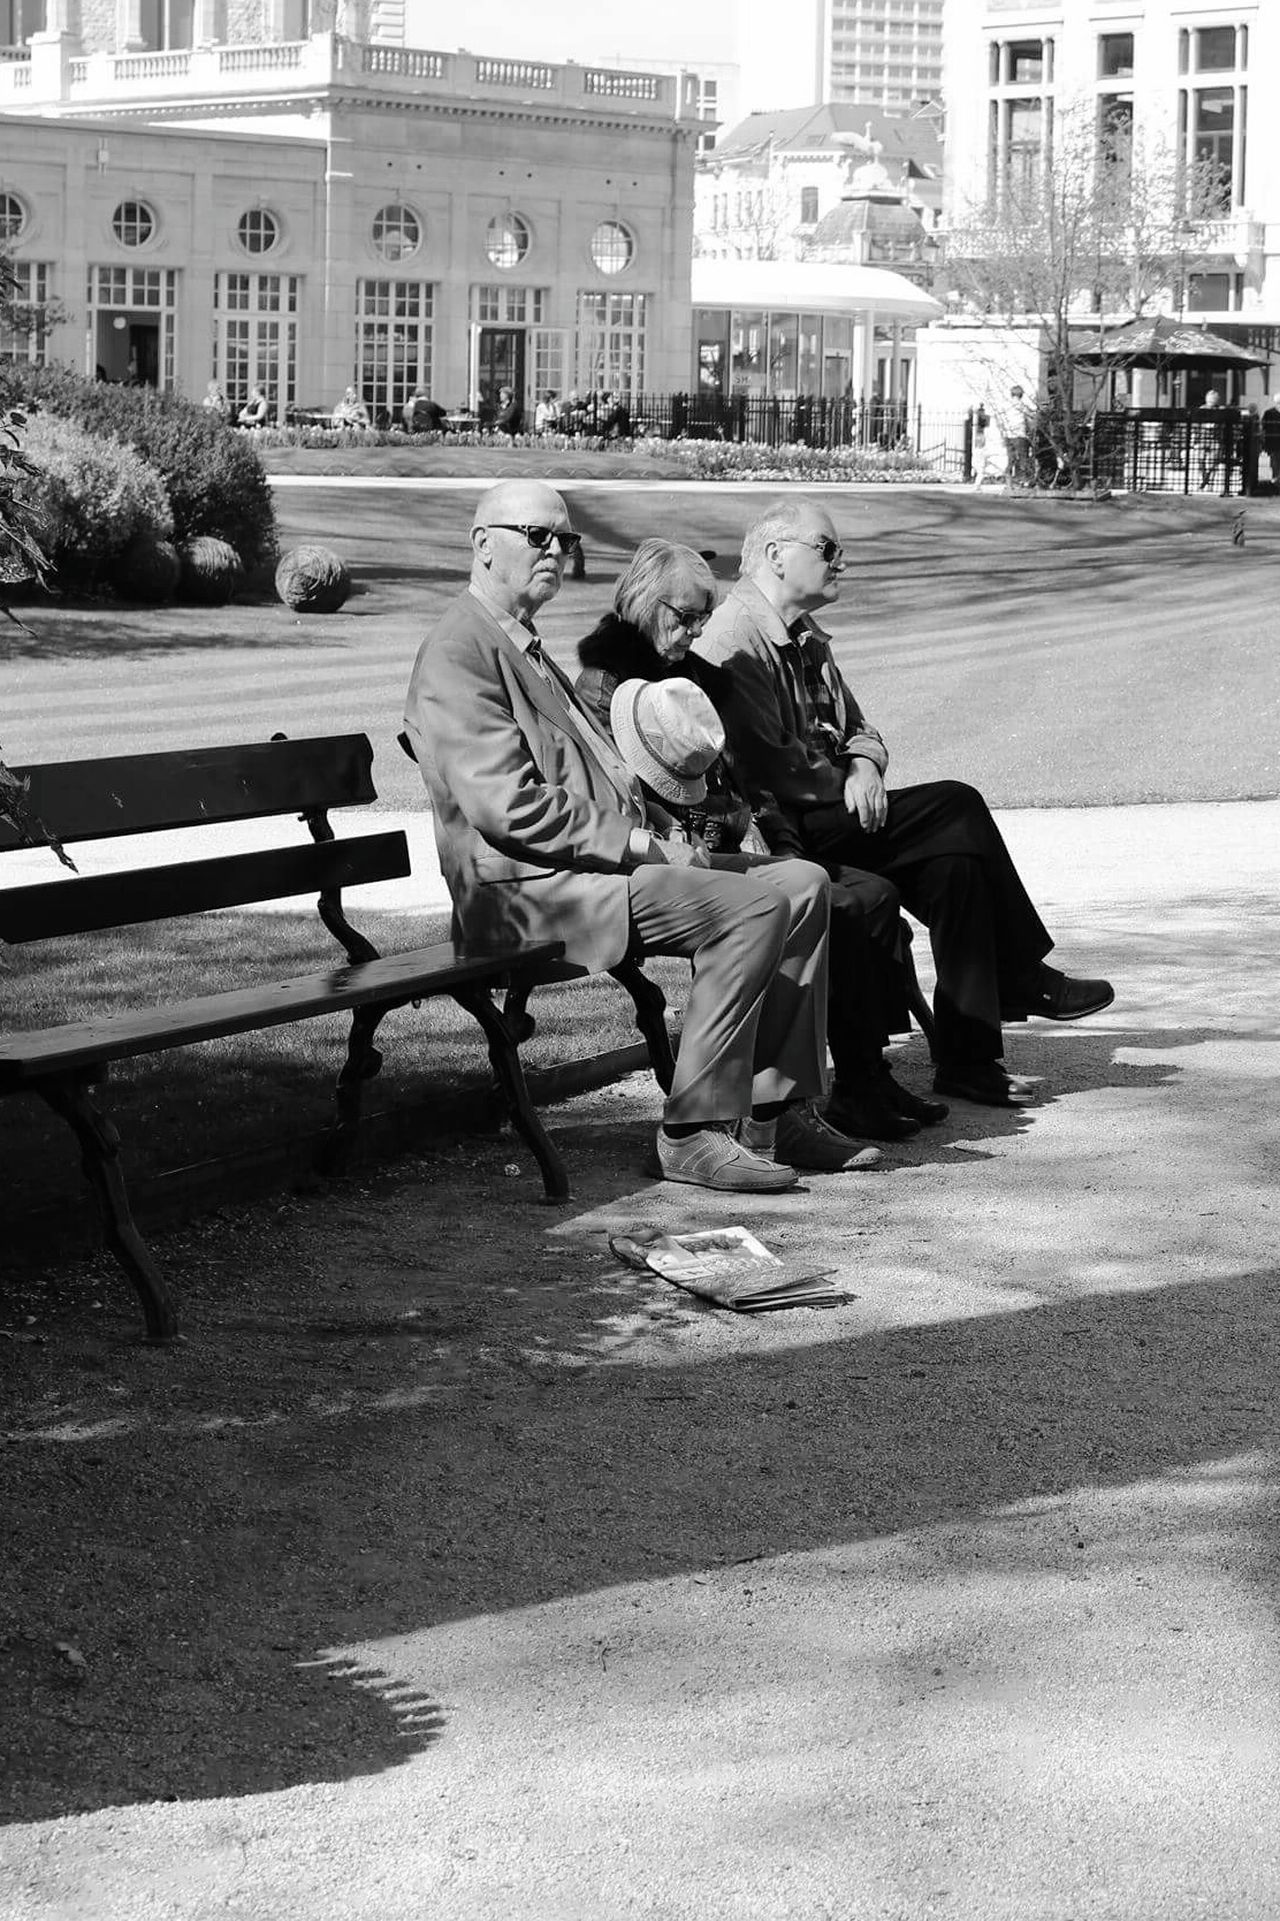 Sitting Mature Adult Park - Man Made Space City Adult Outdoors Men Day People Grass Tree Human Body Part Cityscape City EyeEmNewHere Old People Newspaper Parc Sitting Outside Sitting In The Sun Sunny Day Spring Friendship Goals Peoplephotography People And Places TCPM The Portraitist - 2017 EyeEm Awards The Photojournalist - 2017 EyeEm Awards Live For The Story